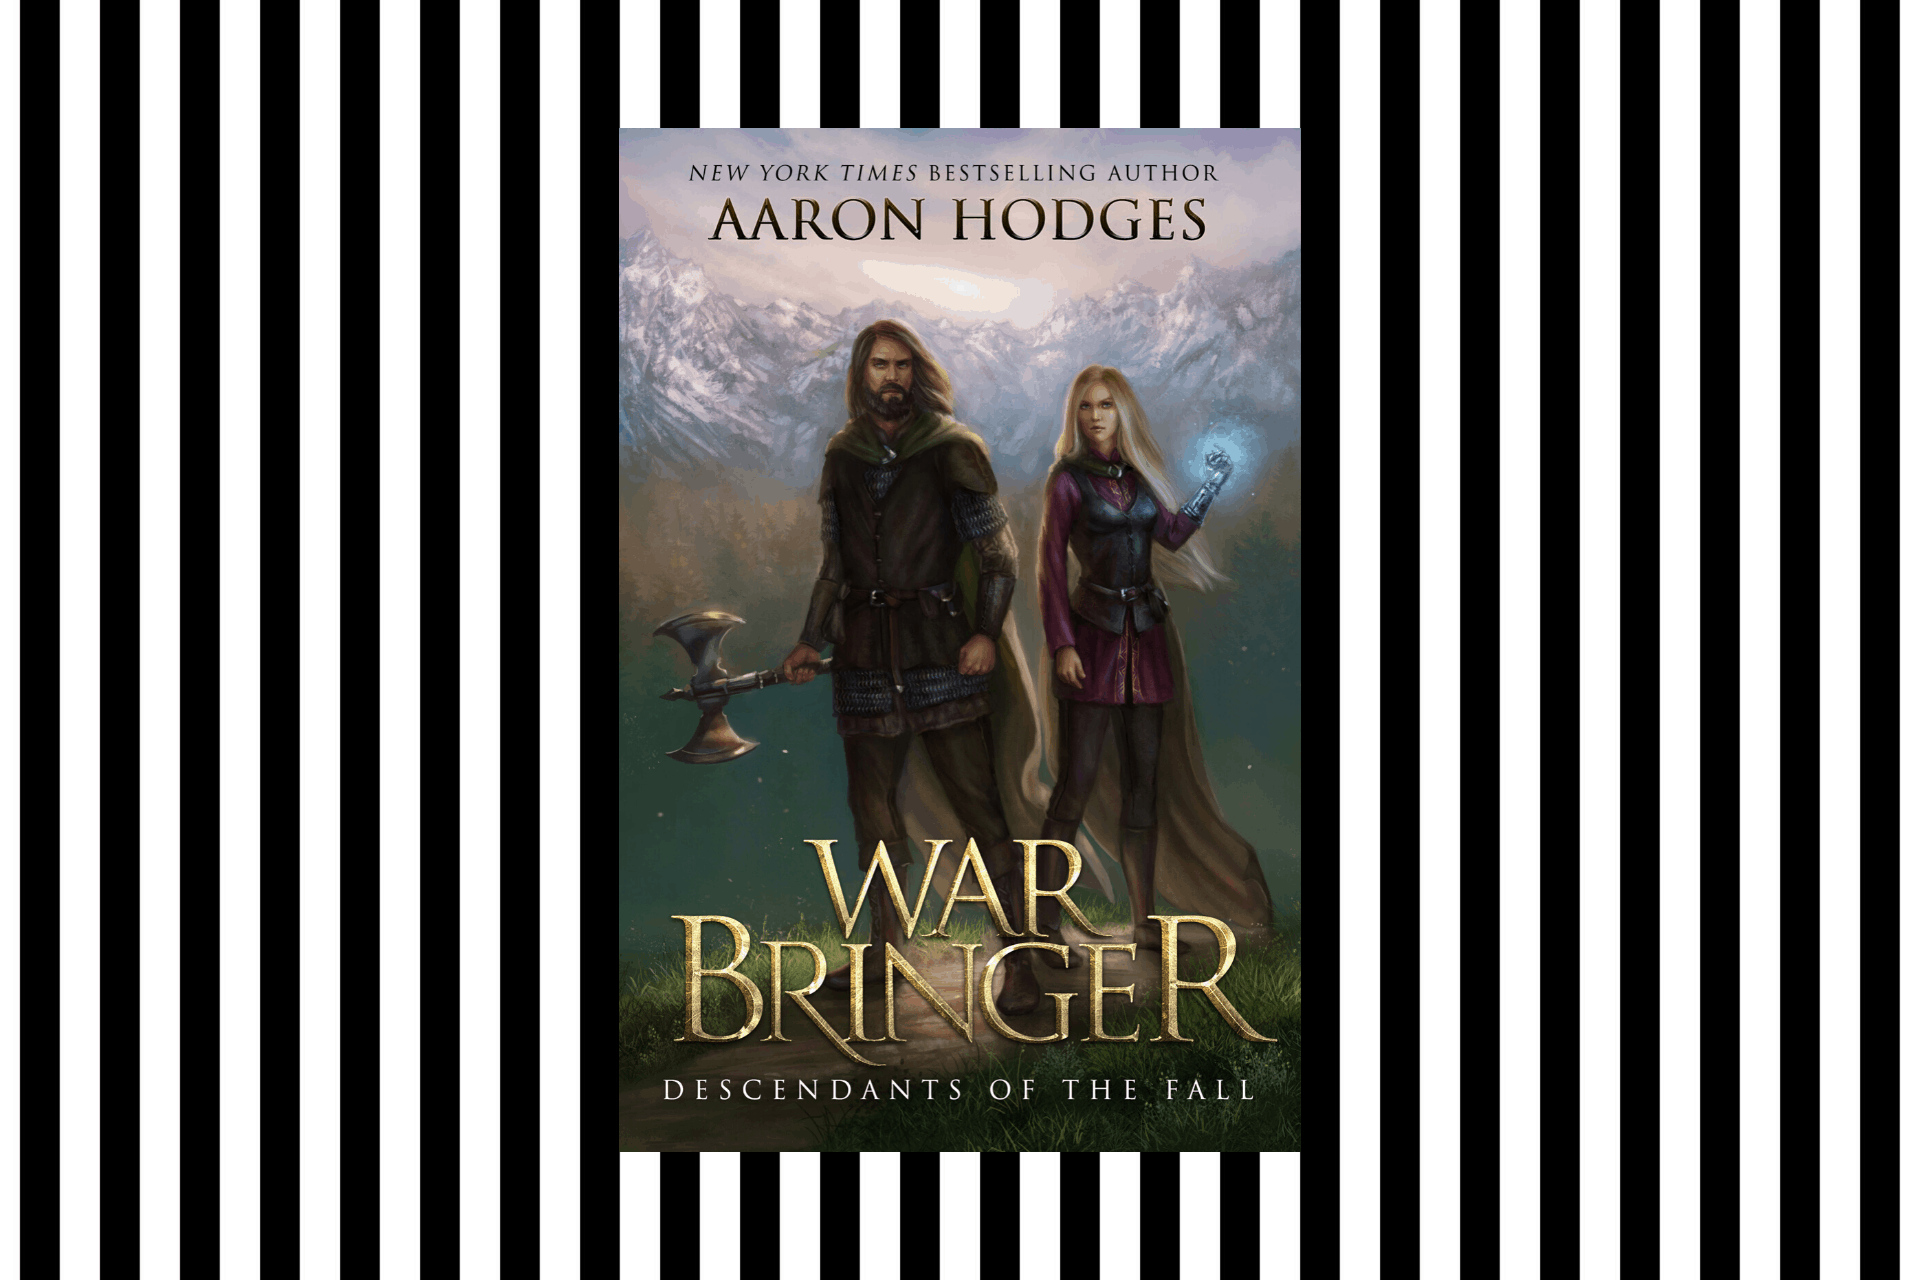 The cover of Warbringer by Aaron Hodges